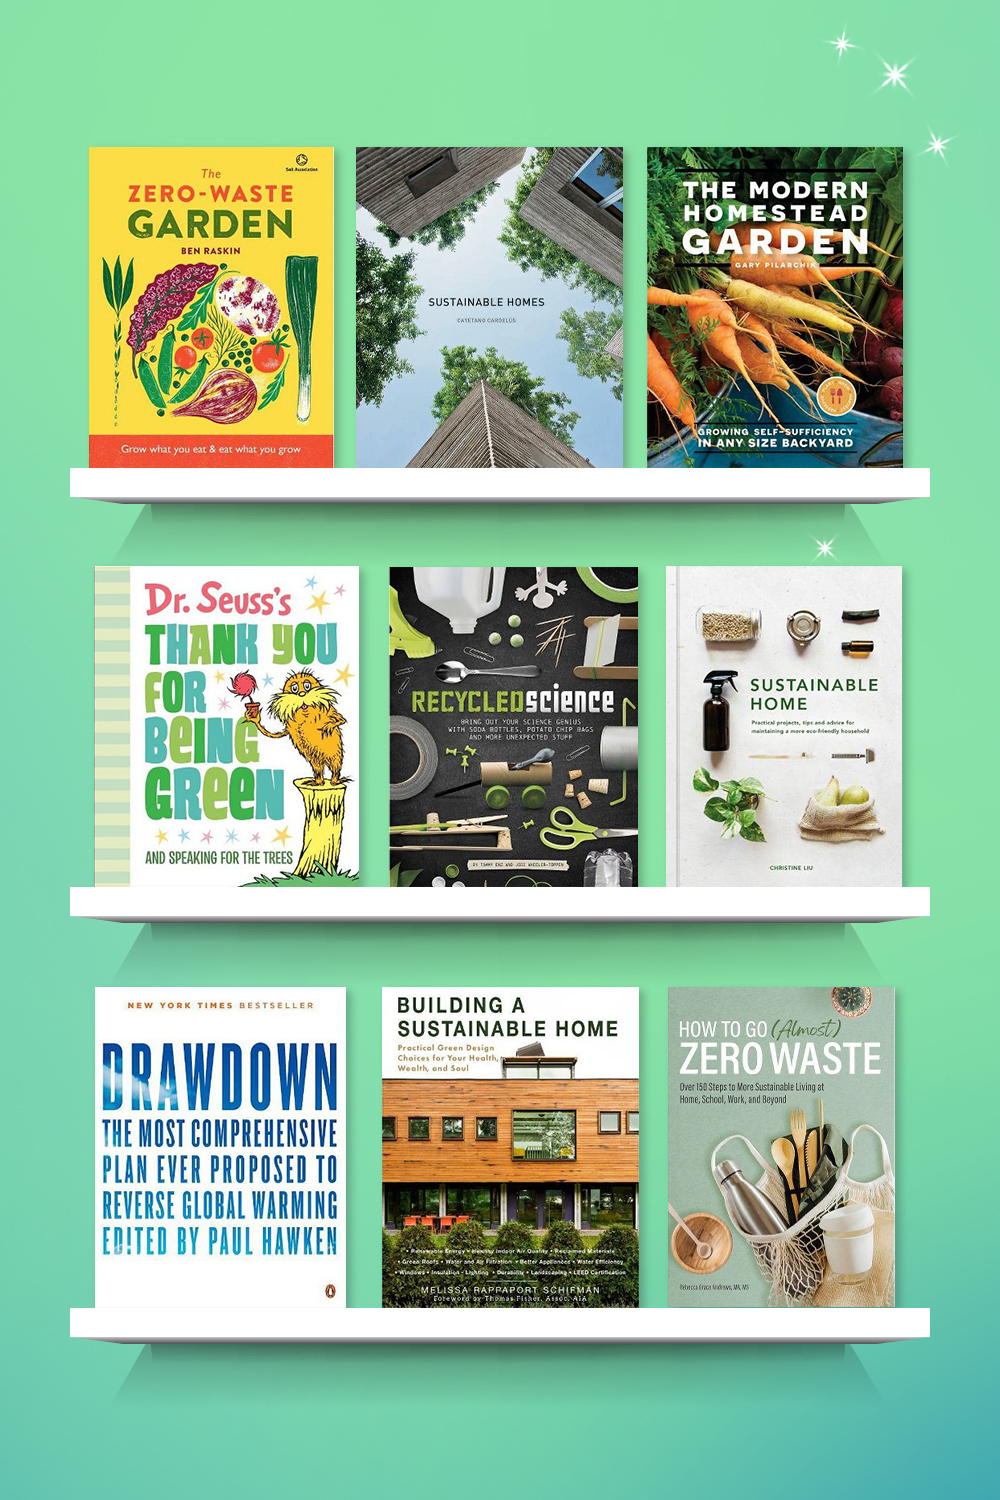 Zero Waste Gardening - by  Ben Raskin (Hardcover), Sustainable Homes - by  Cayetano Cardelus (Hardcover), The Modern Homestead Garden - by  Gary Pilarchik (Paperback), Dr. Seuss's Thank You for Being Green: And Speaking for the Trees (Hardcover) - by DR SEUSS, Recycled Science - by Tammy Enz & Jodi Wheeler-Toppen (Paperback), Sustainable Home - (Sustainable Living) by  Christine Liu (Hardcover), Drawdown - by  Paul Hawken (Paperback), Building a Sustainable Home - by  Melissa Rappaport Schifman (Paperback), How to Go (Almost) Zero Waste - by  Rebecca Grace Andrews (Paperback)